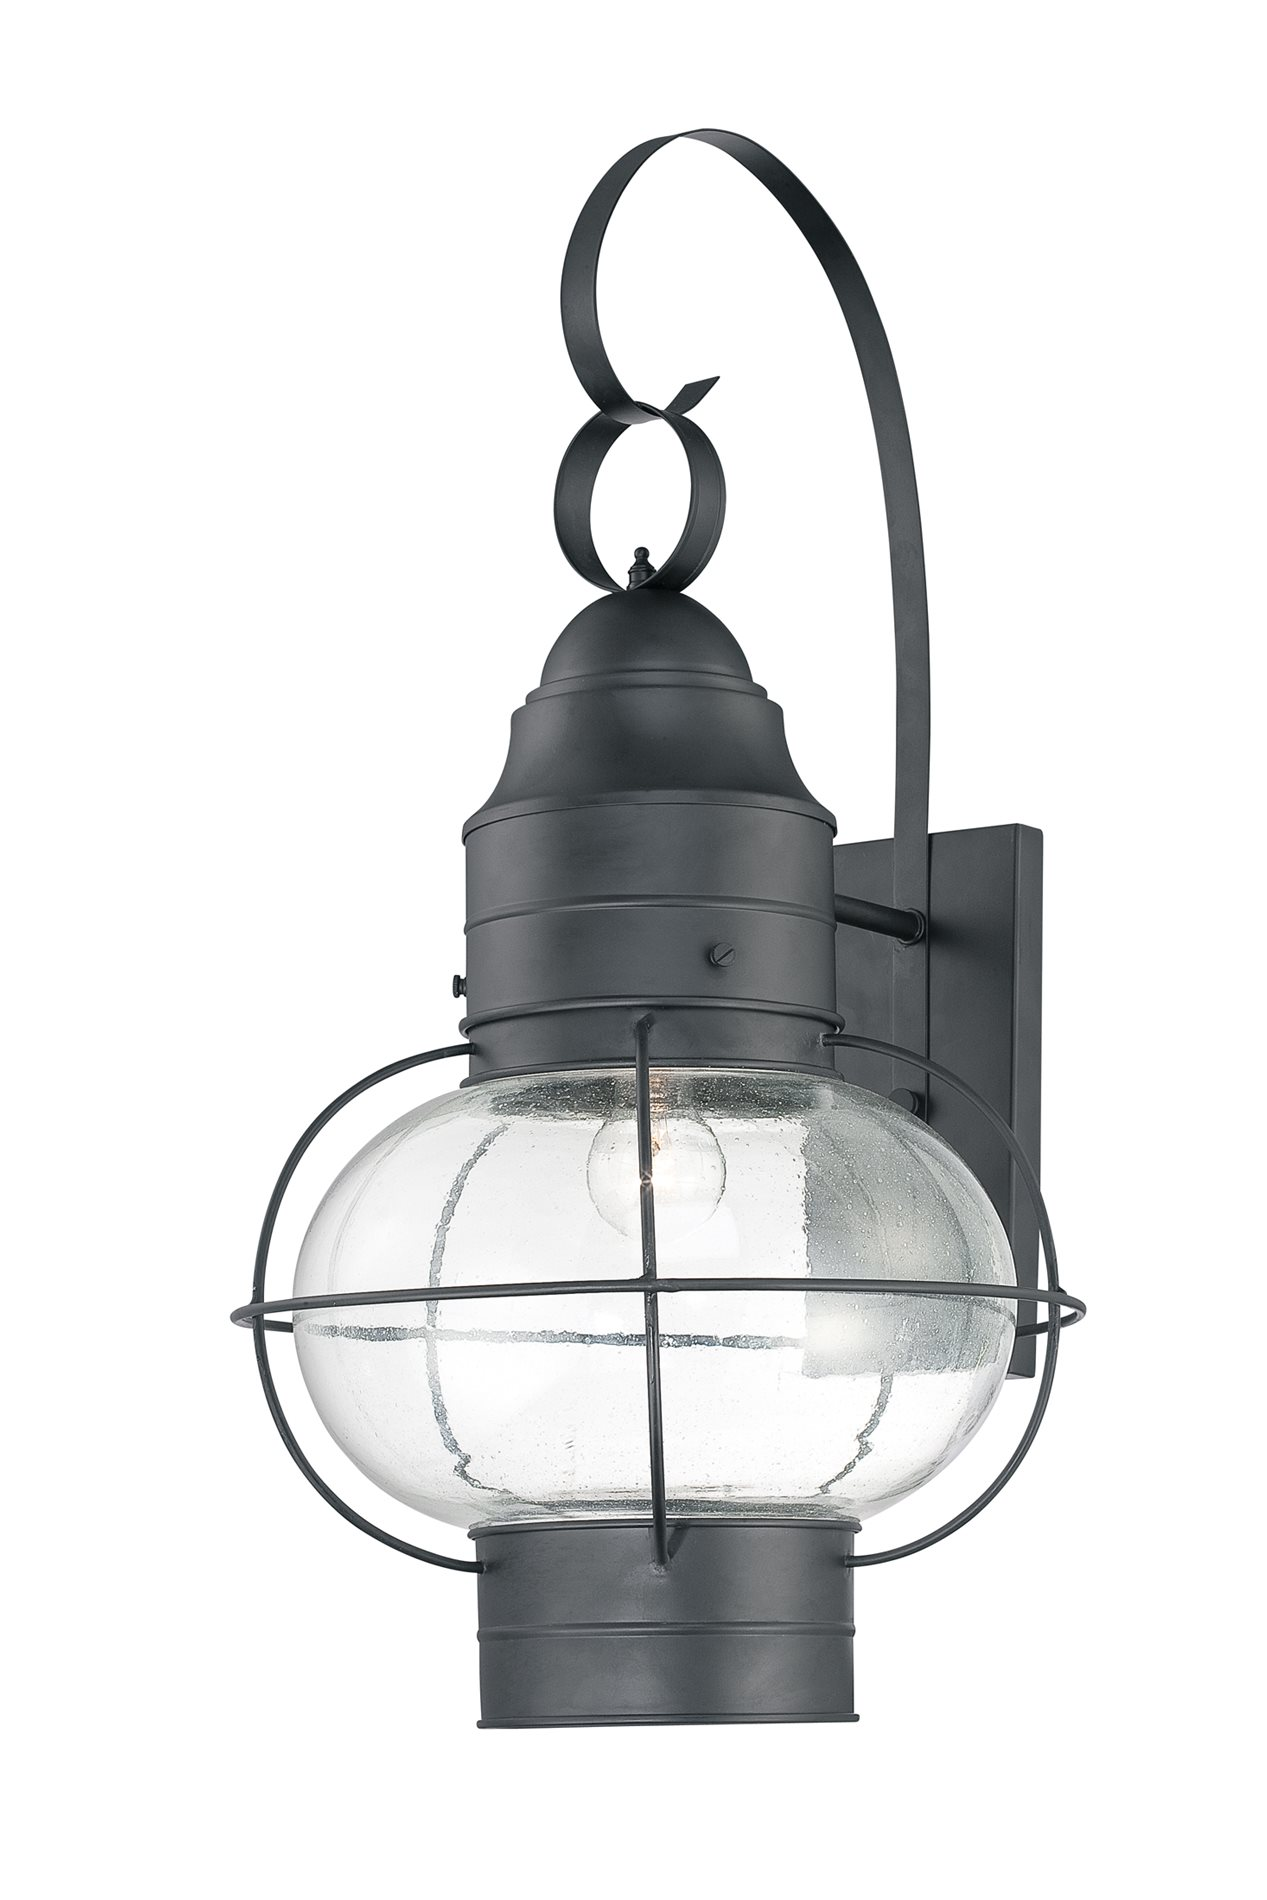 Quoizel COR8414K Cooper Transitional Outdoor Wall Sconce - Large QZ-COR8414K